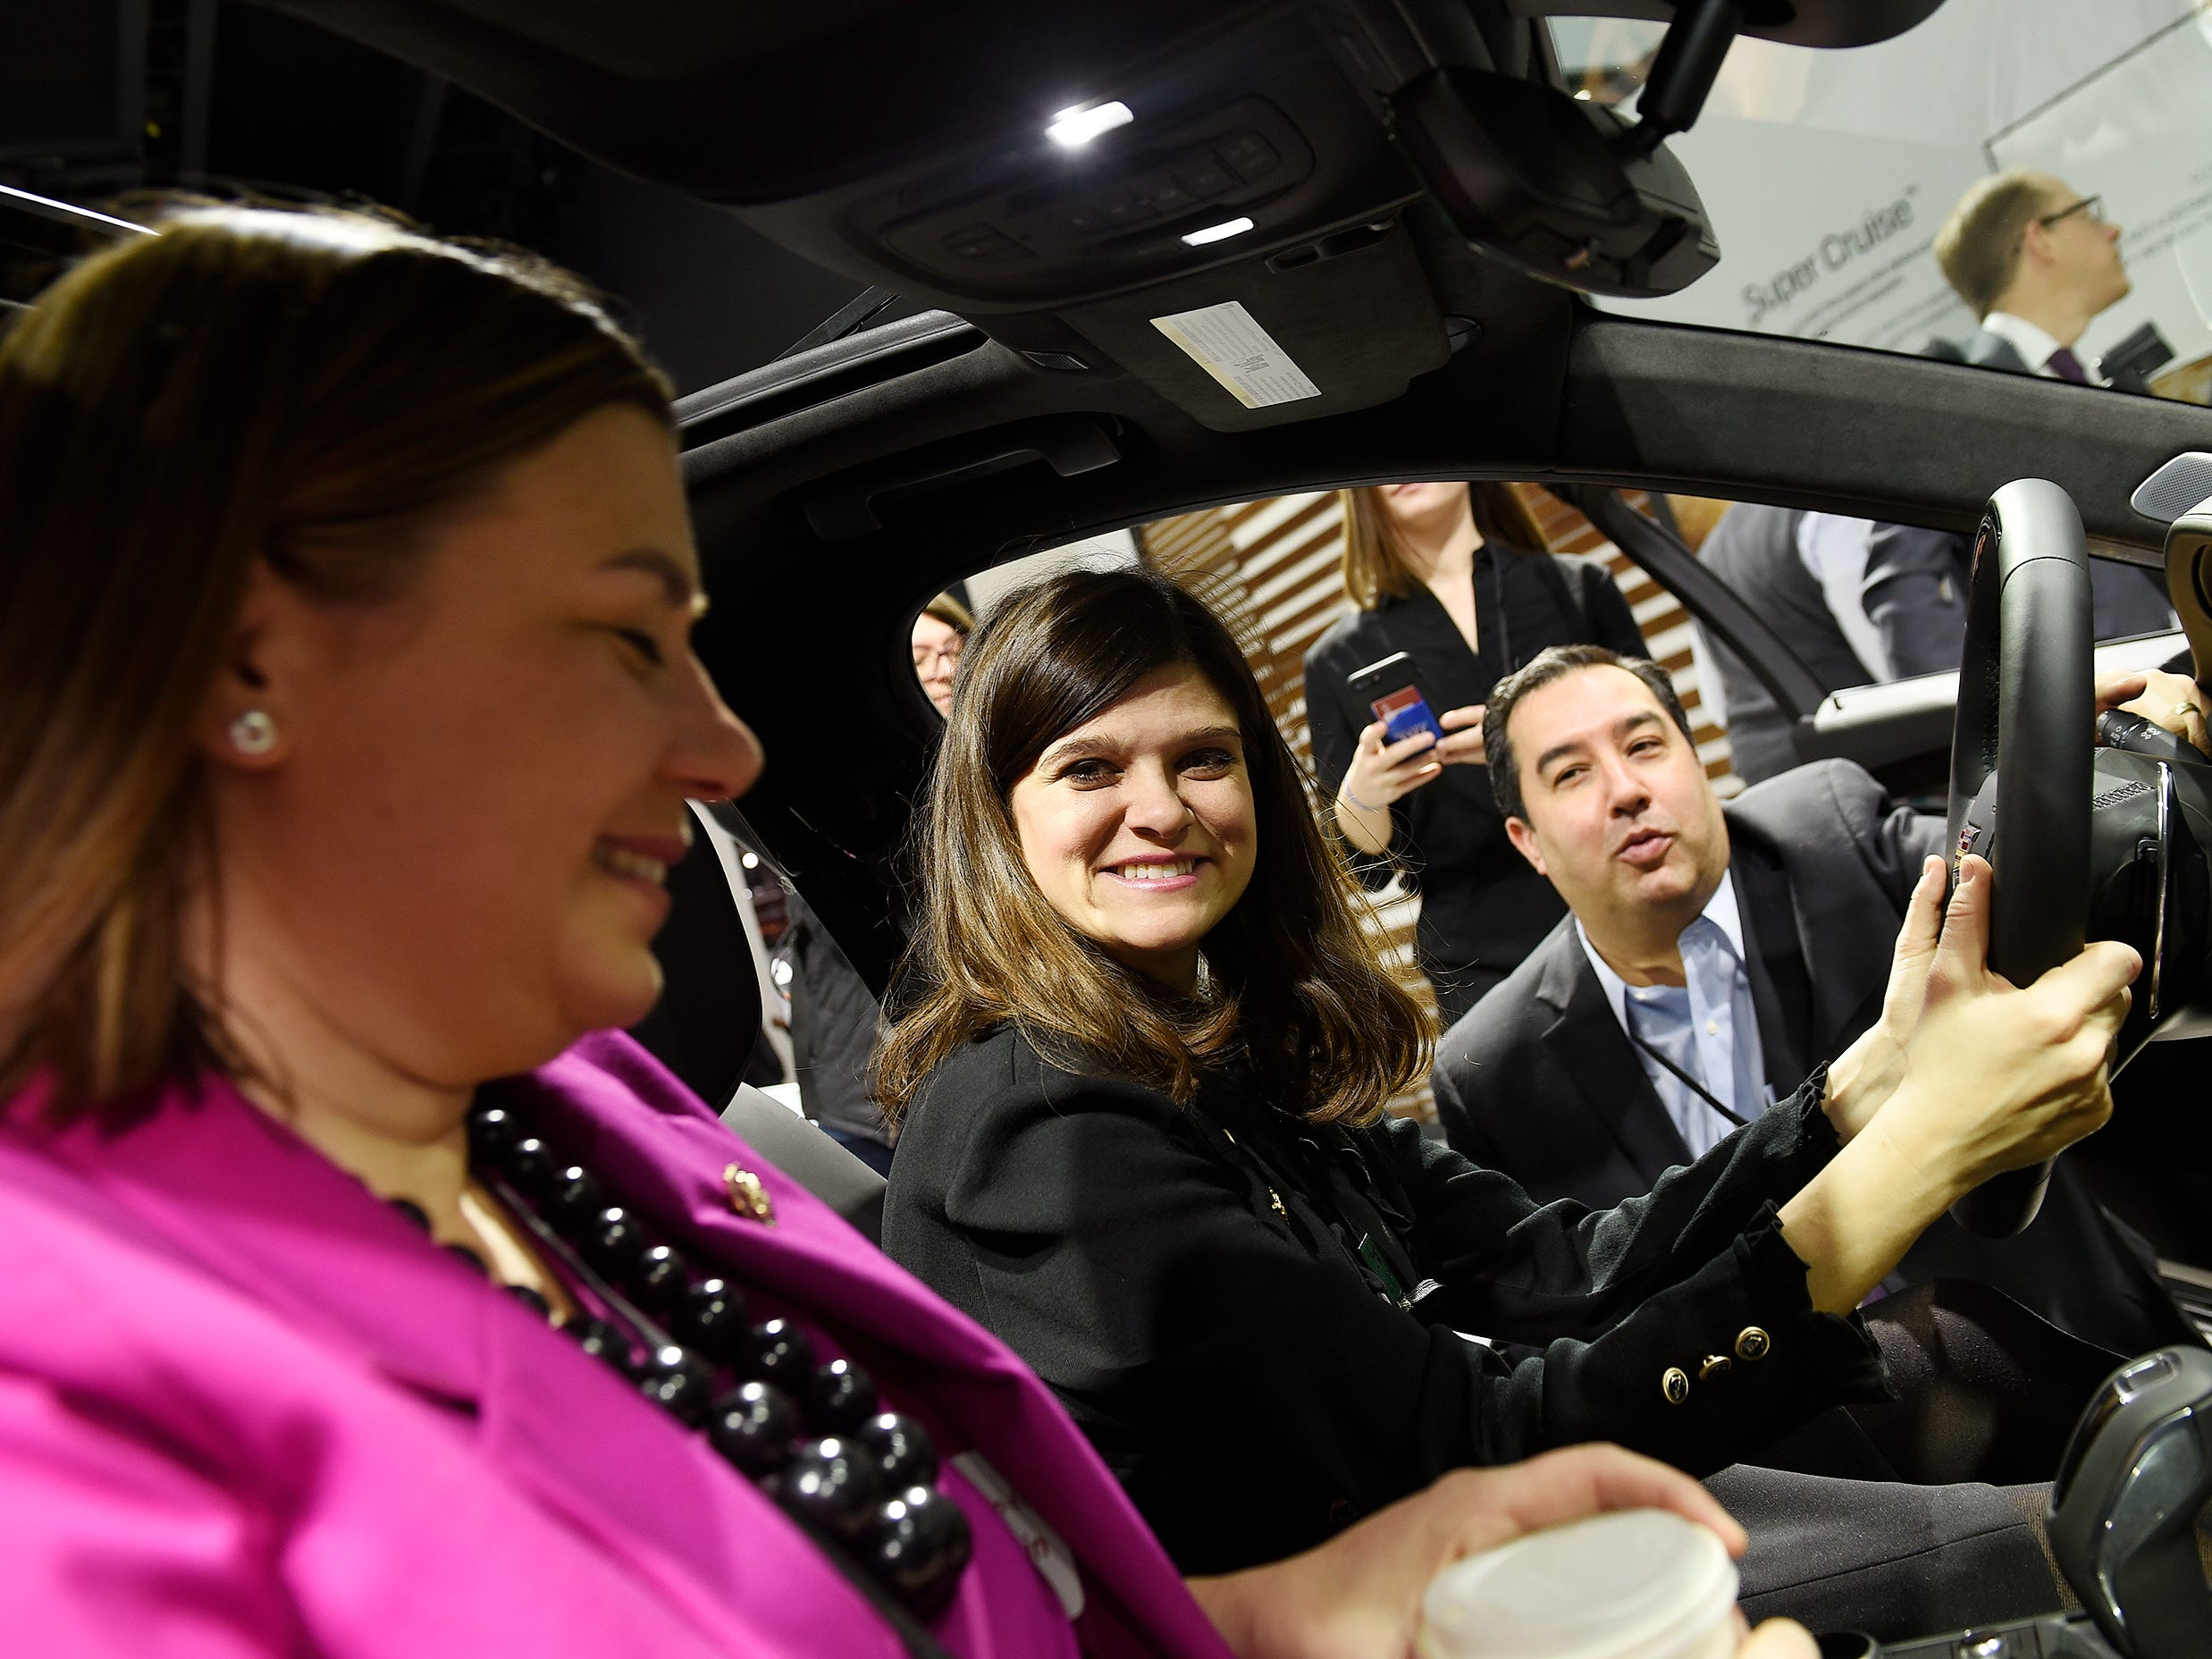 Richard F. Lopez, director of federal and administration affairs at GM, gives Michigan Congresswomen Haley Stevens, center, and Elissa Slotkin a description of the new Cadillac CT6 during the tour.